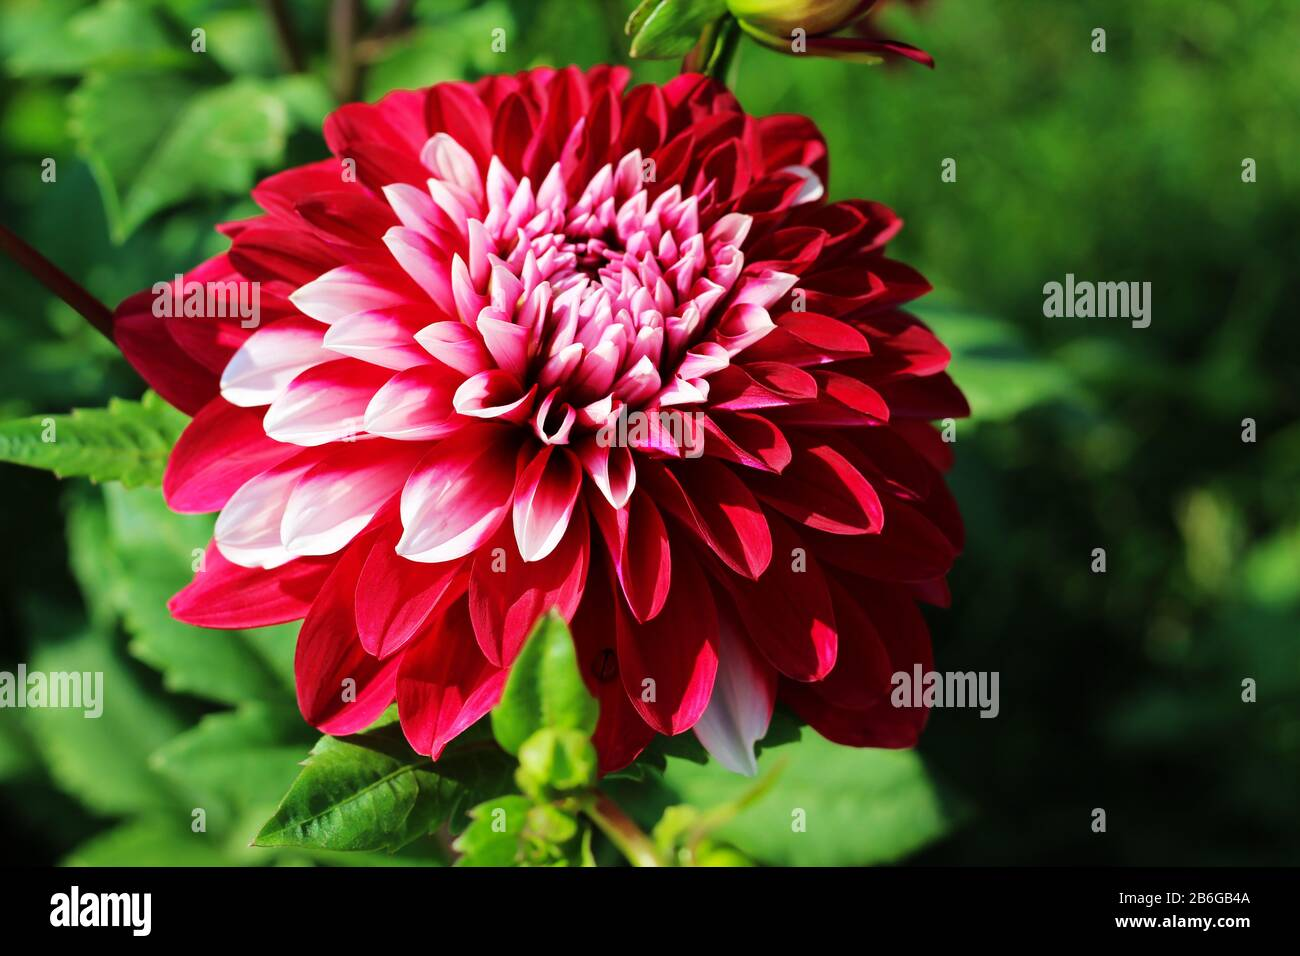 Colorful Closeup Vibrant Flower In The Garden Macro Photography Beautiful Nature Wallpaper With Soft Green Background Stock Photo Alamy